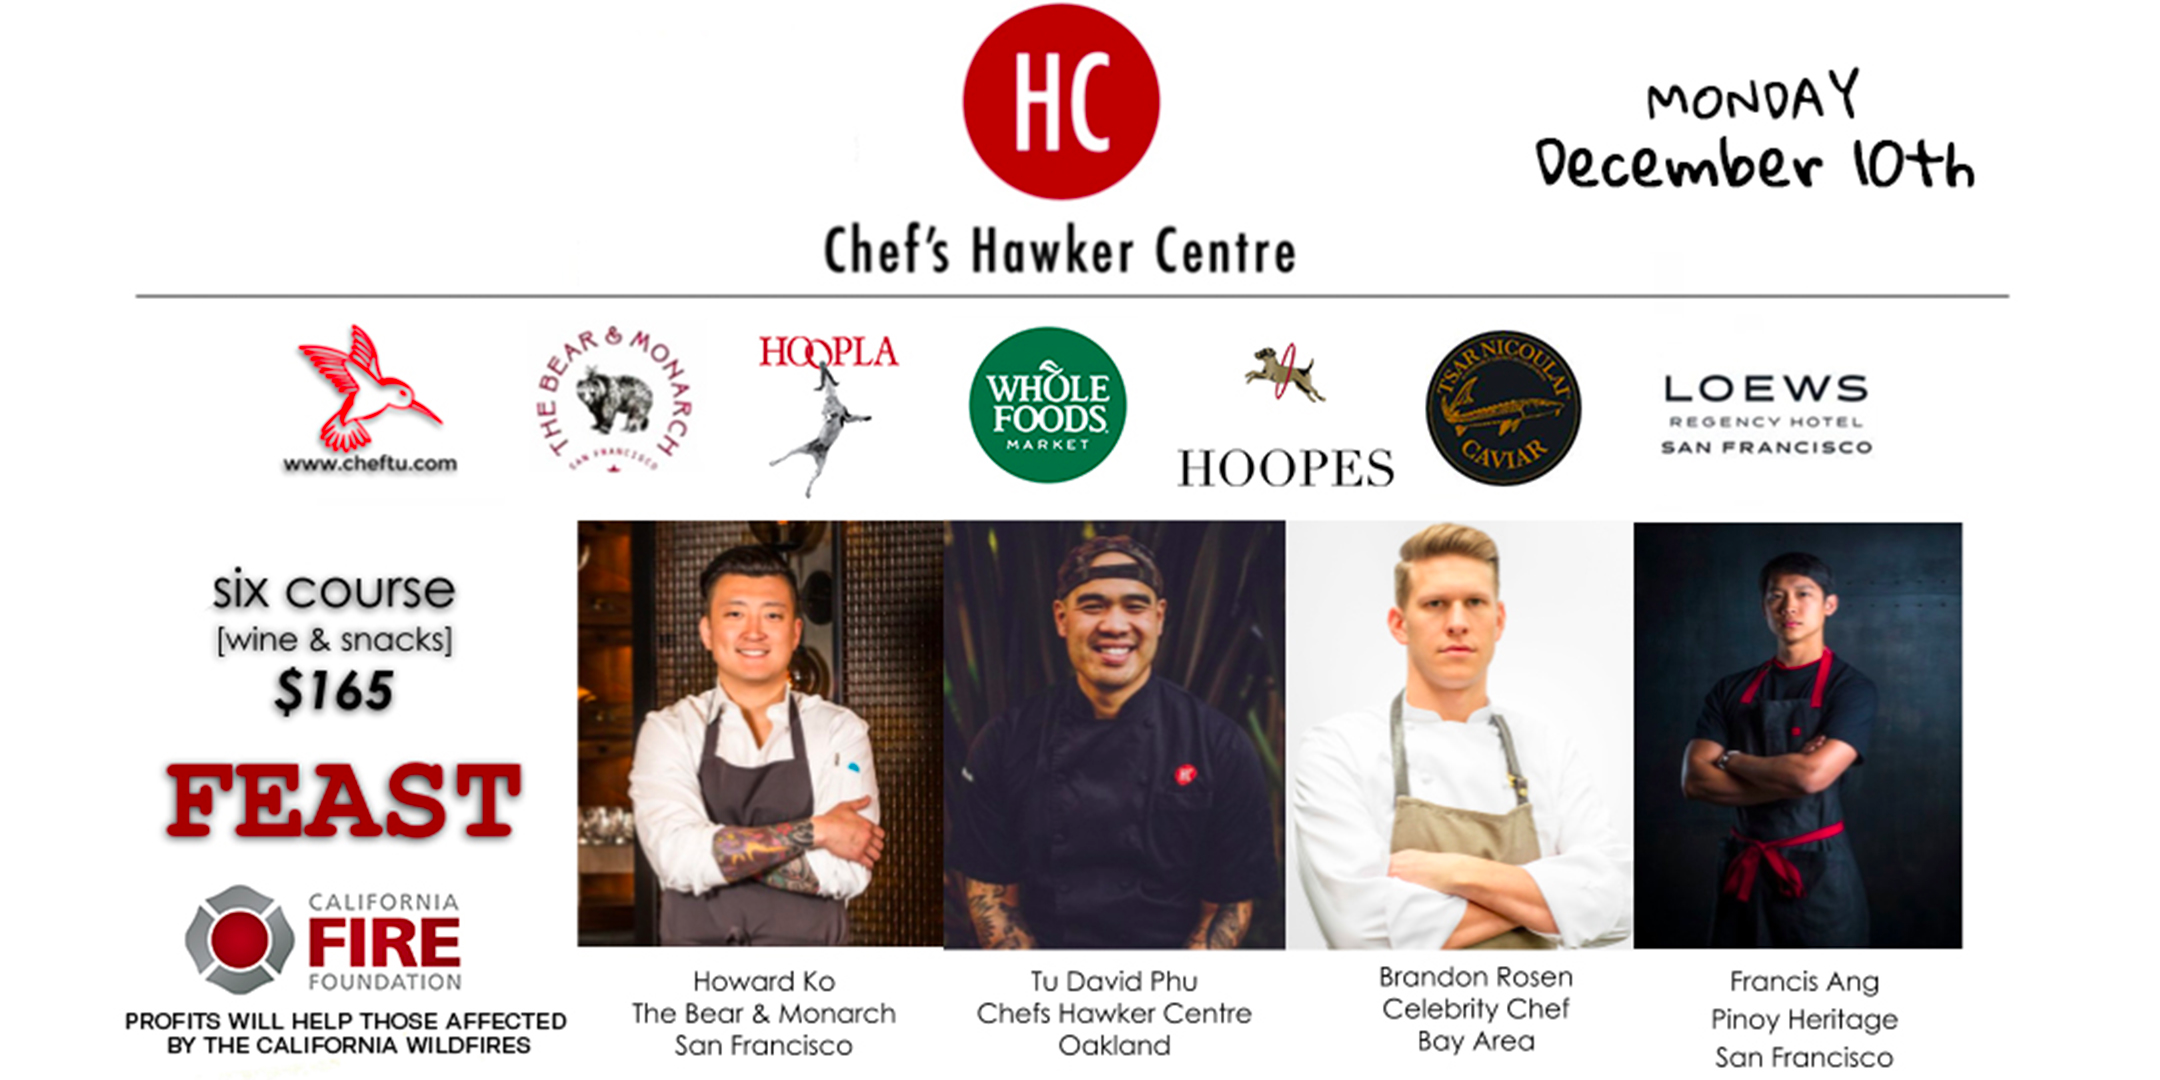 Howard Ko, Executive Chef of  The Bear & Monarch  is excited to partner with Chef's Hawker Centre for a memorable holiday feast for the senses.  Join us in the Bayview Terrace Presidential Suite at the  Loews Regency San Francisco  for canapes and libations. Followed by a 6 course plated dinner with wine pairing in The Bear & Monarch Private Dining Room.  All Star Chefs Howard Ko, Tu David Phu, Brandon Rosen and Francis Ang together will cook their Heritage Holiday Dishes.  Portions of the night's proceeds will be donated to the victims of the Northern California fires.